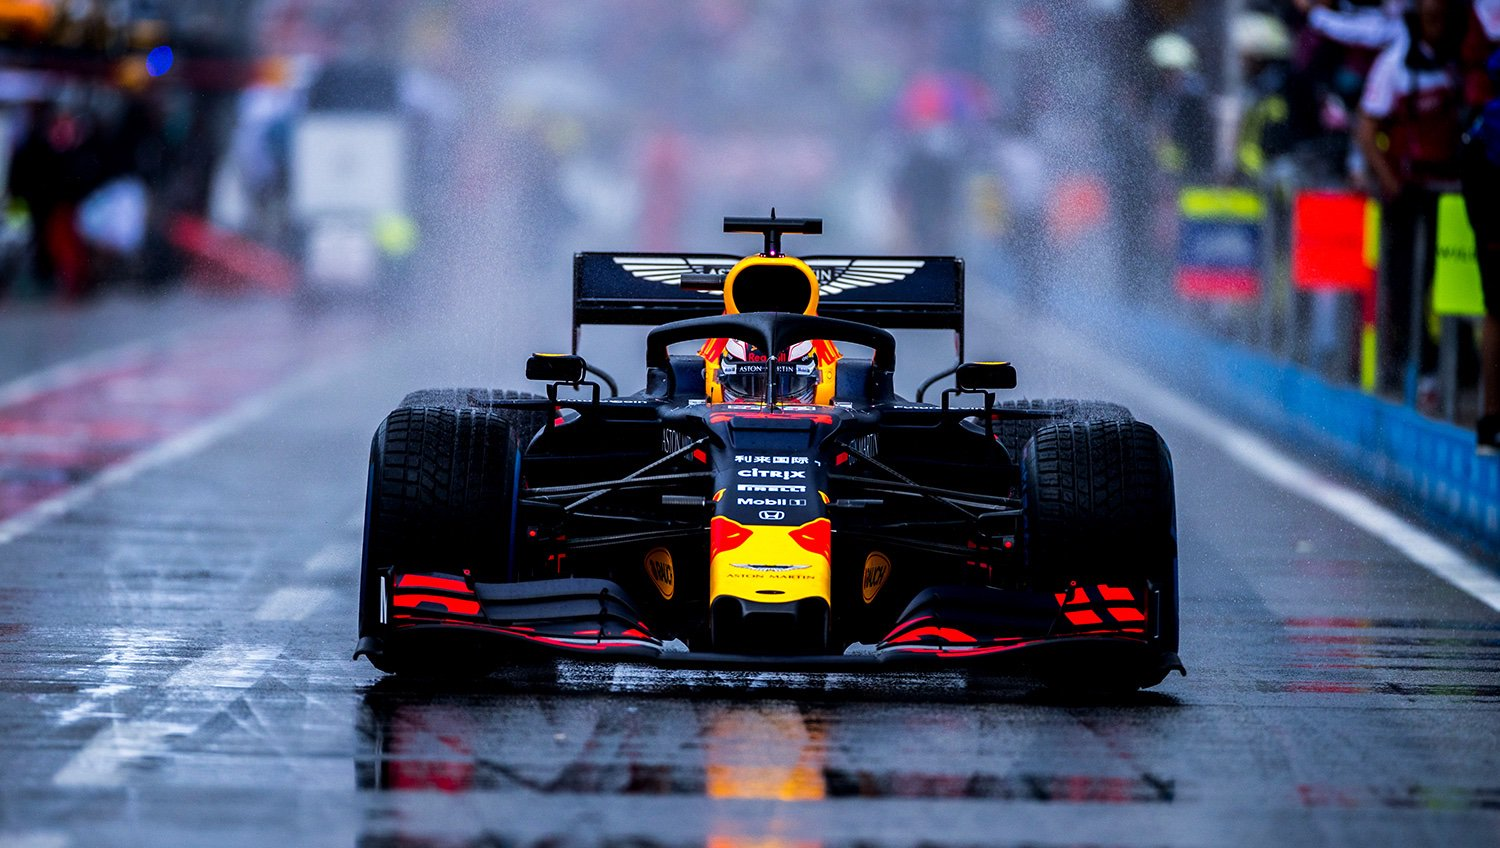 Red Bull sets another world record for fastest pit stop